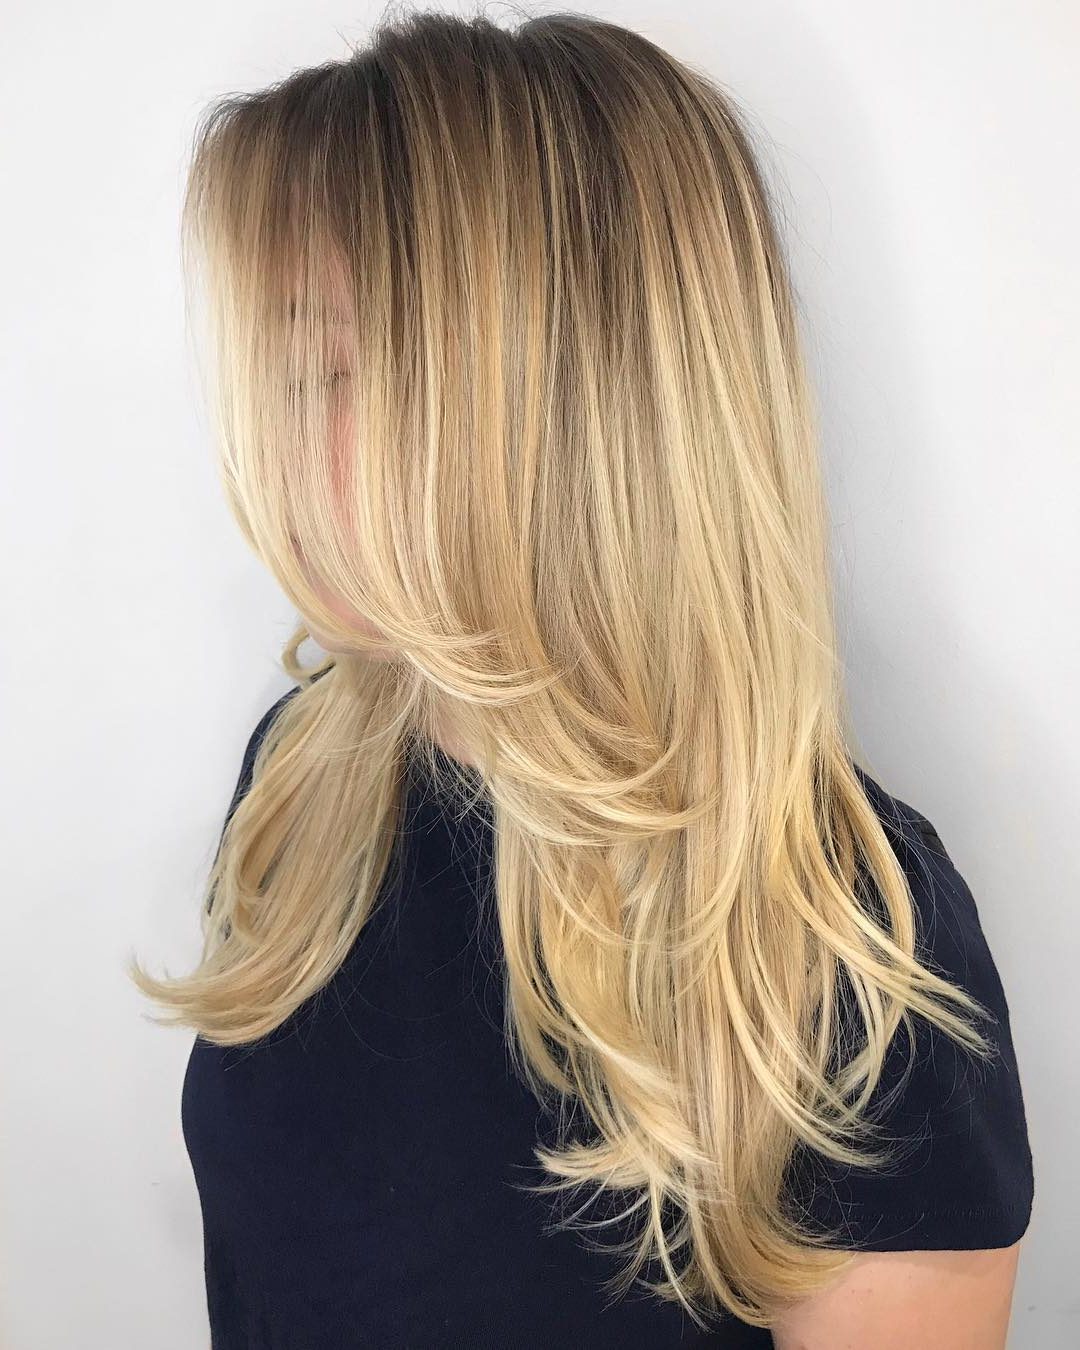 Widely Used Shiny Caramel Layers Long Shag Haircuts Inside How To Nail Layered Hair In 2019: Full Guide To Lengths And (View 19 of 20)